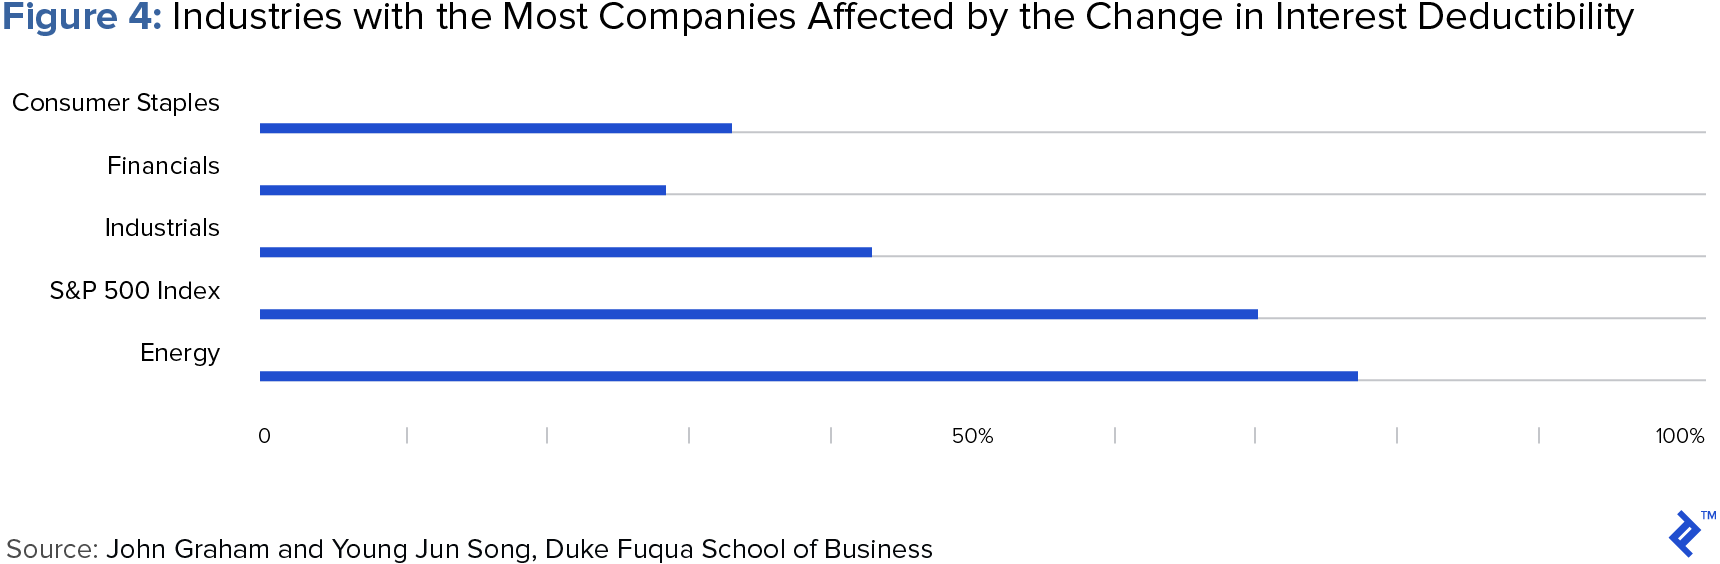 chart of industries with the most companies affected by the change in interest deductibility